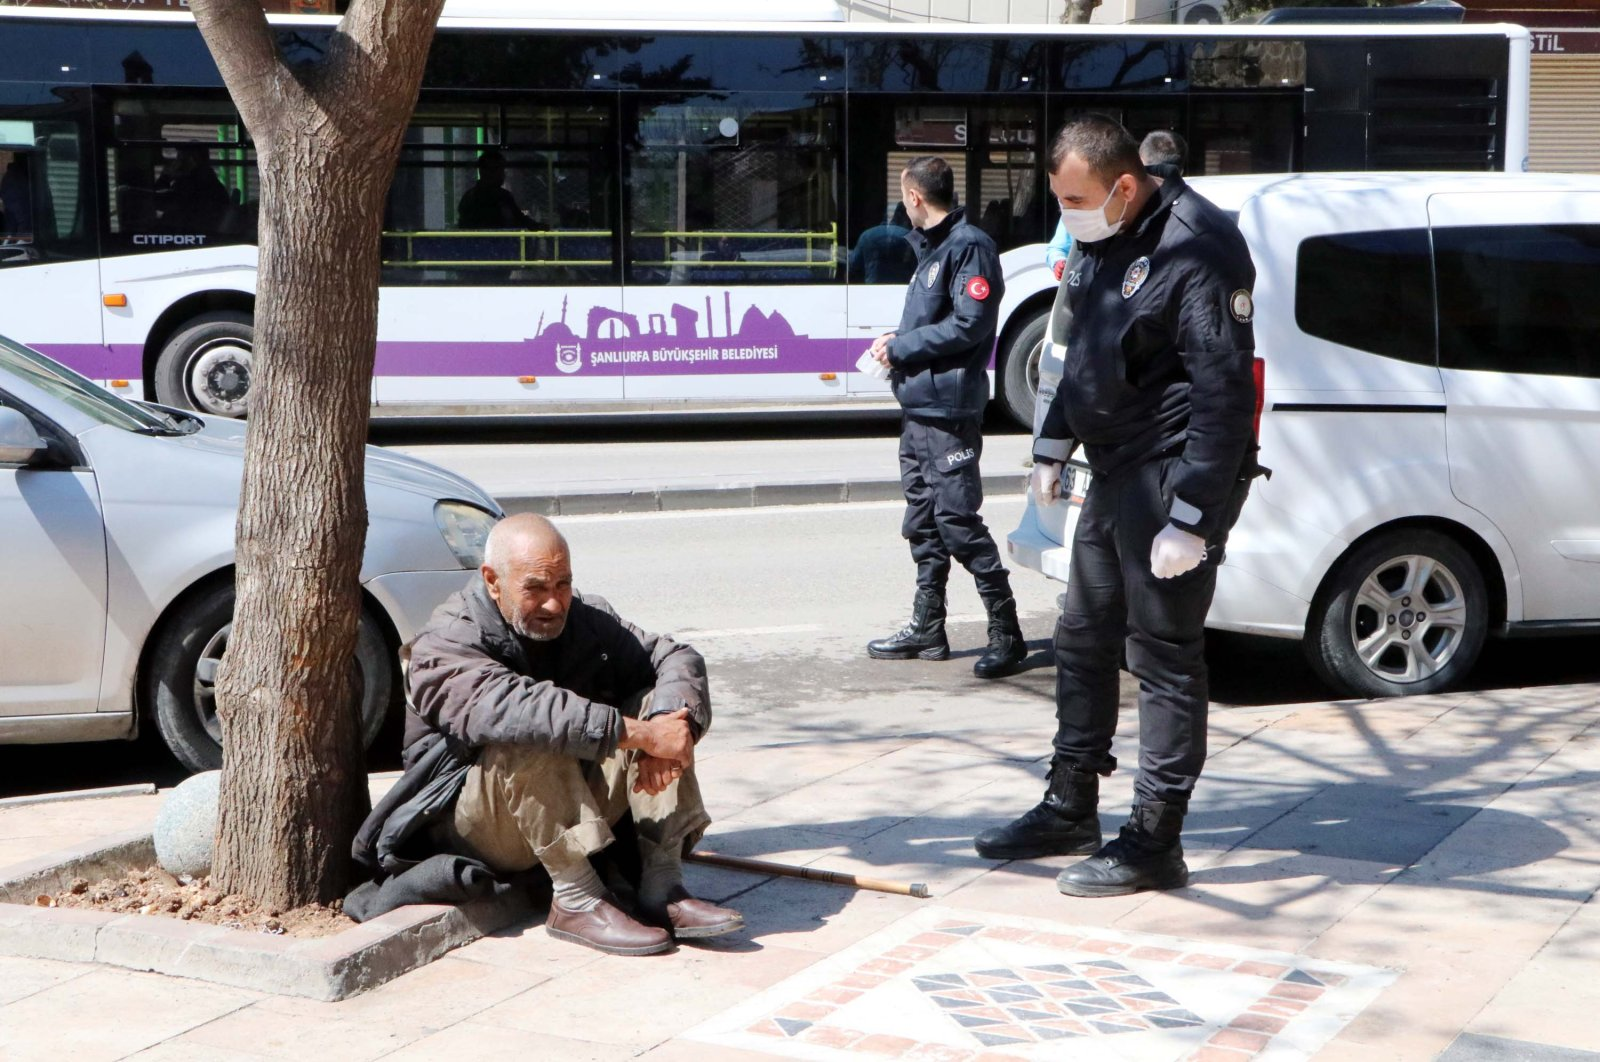 A police officer tries to convince a 68-year-old homeless man to let him take him to a shelter in Şanlıurfa, Sunday, March 22, 2020. (DHA Photo)